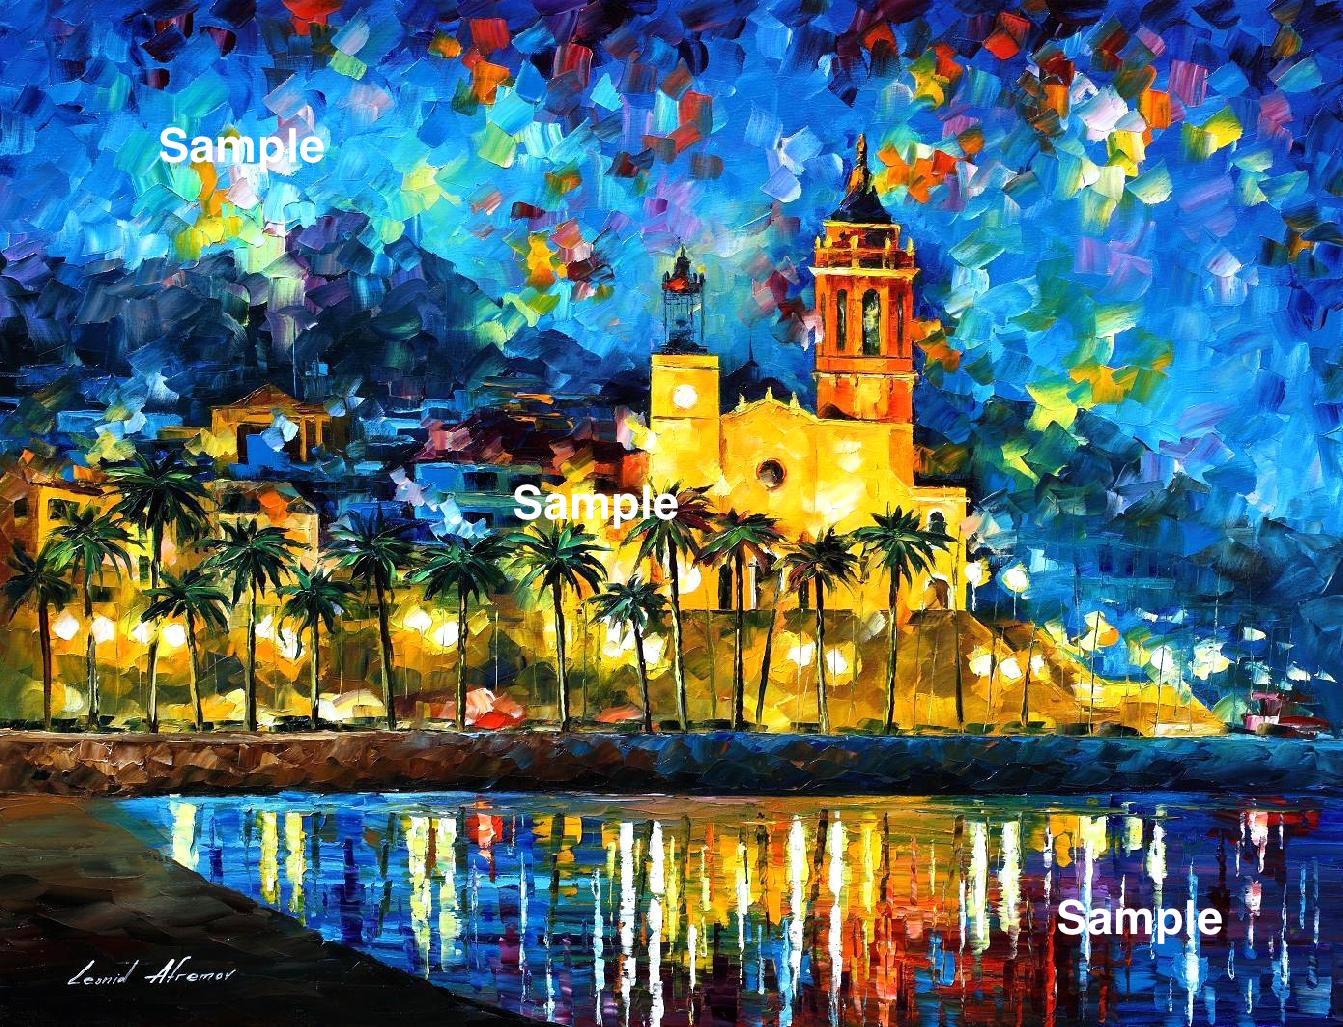 A custom made cityscape/seascape/landscape based on your photo by Leonid Afremov , Size 100cm x 100cm - stretched  (for yolisalazar2009@yahoo.com)